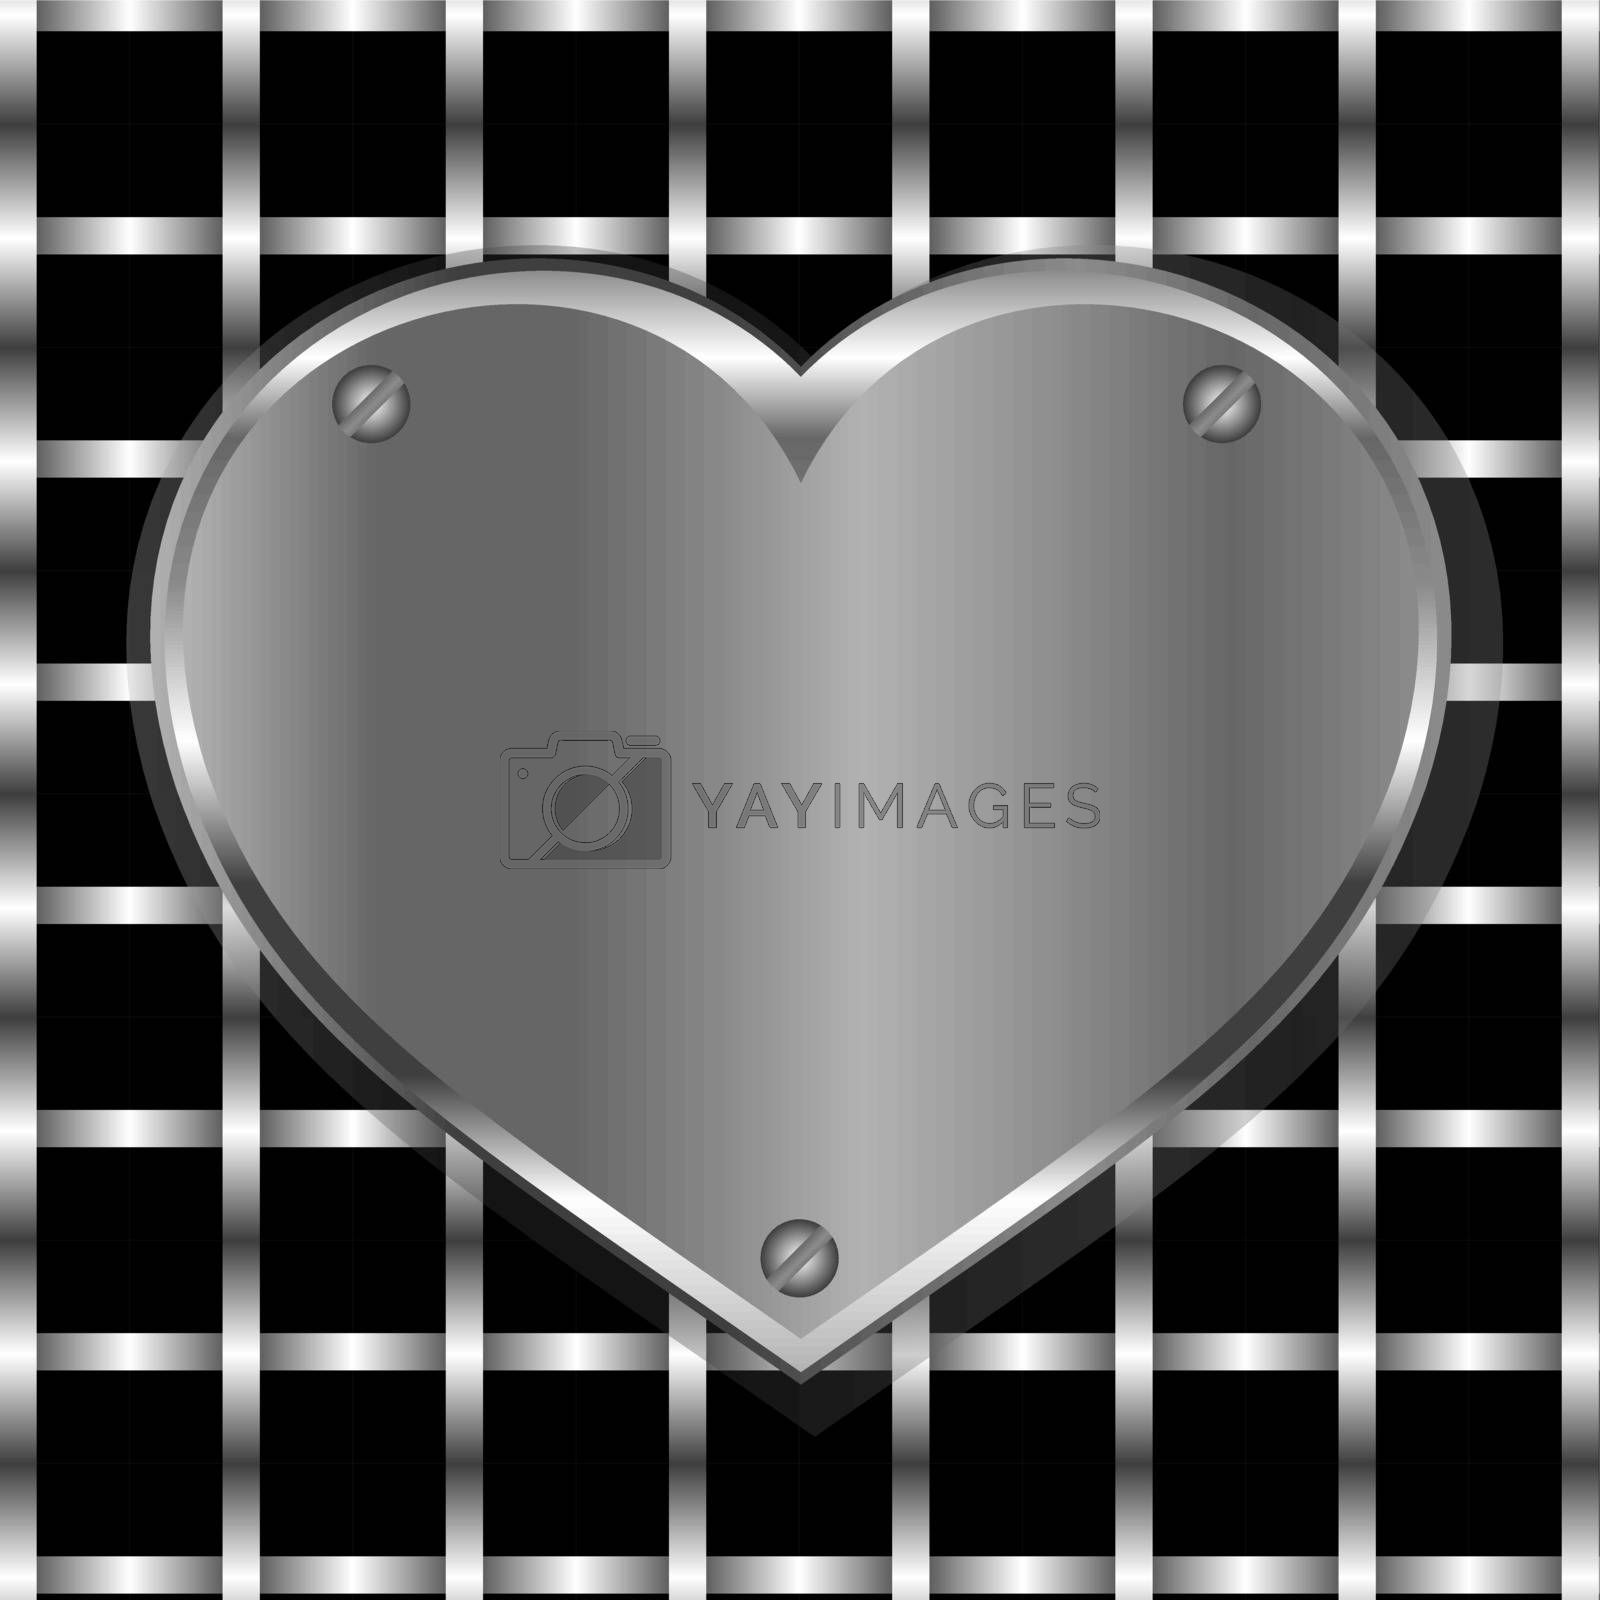 Brushed metal heart on a perforated metal vector background